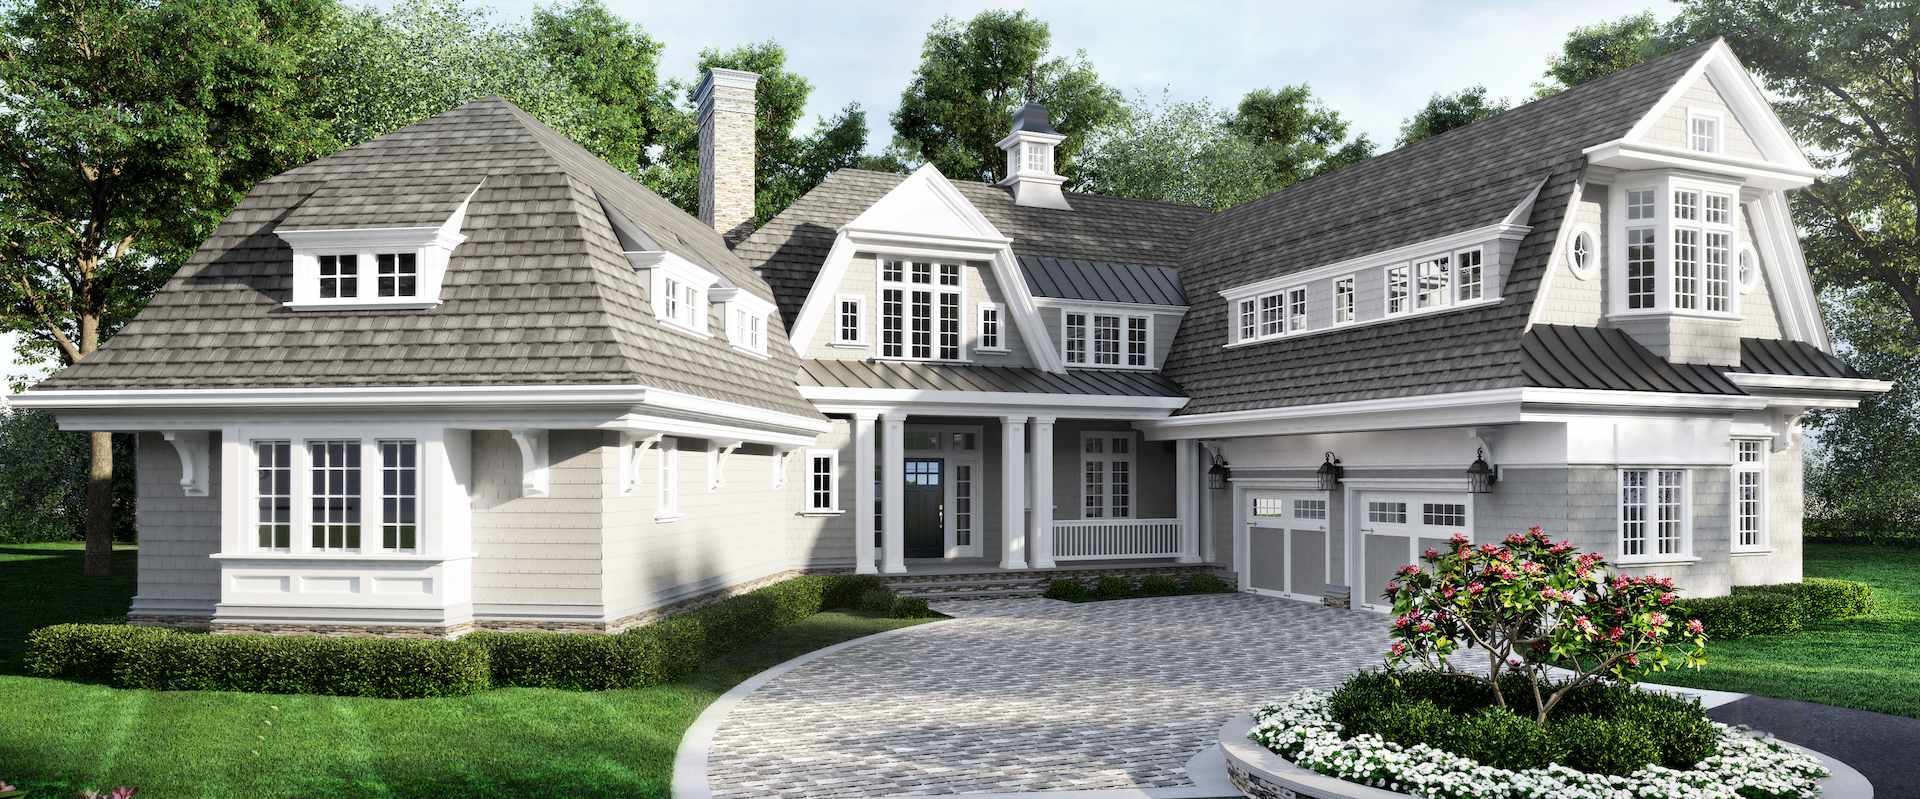 Grant homes custom home builders in new jerseygrant homes for Housing builders